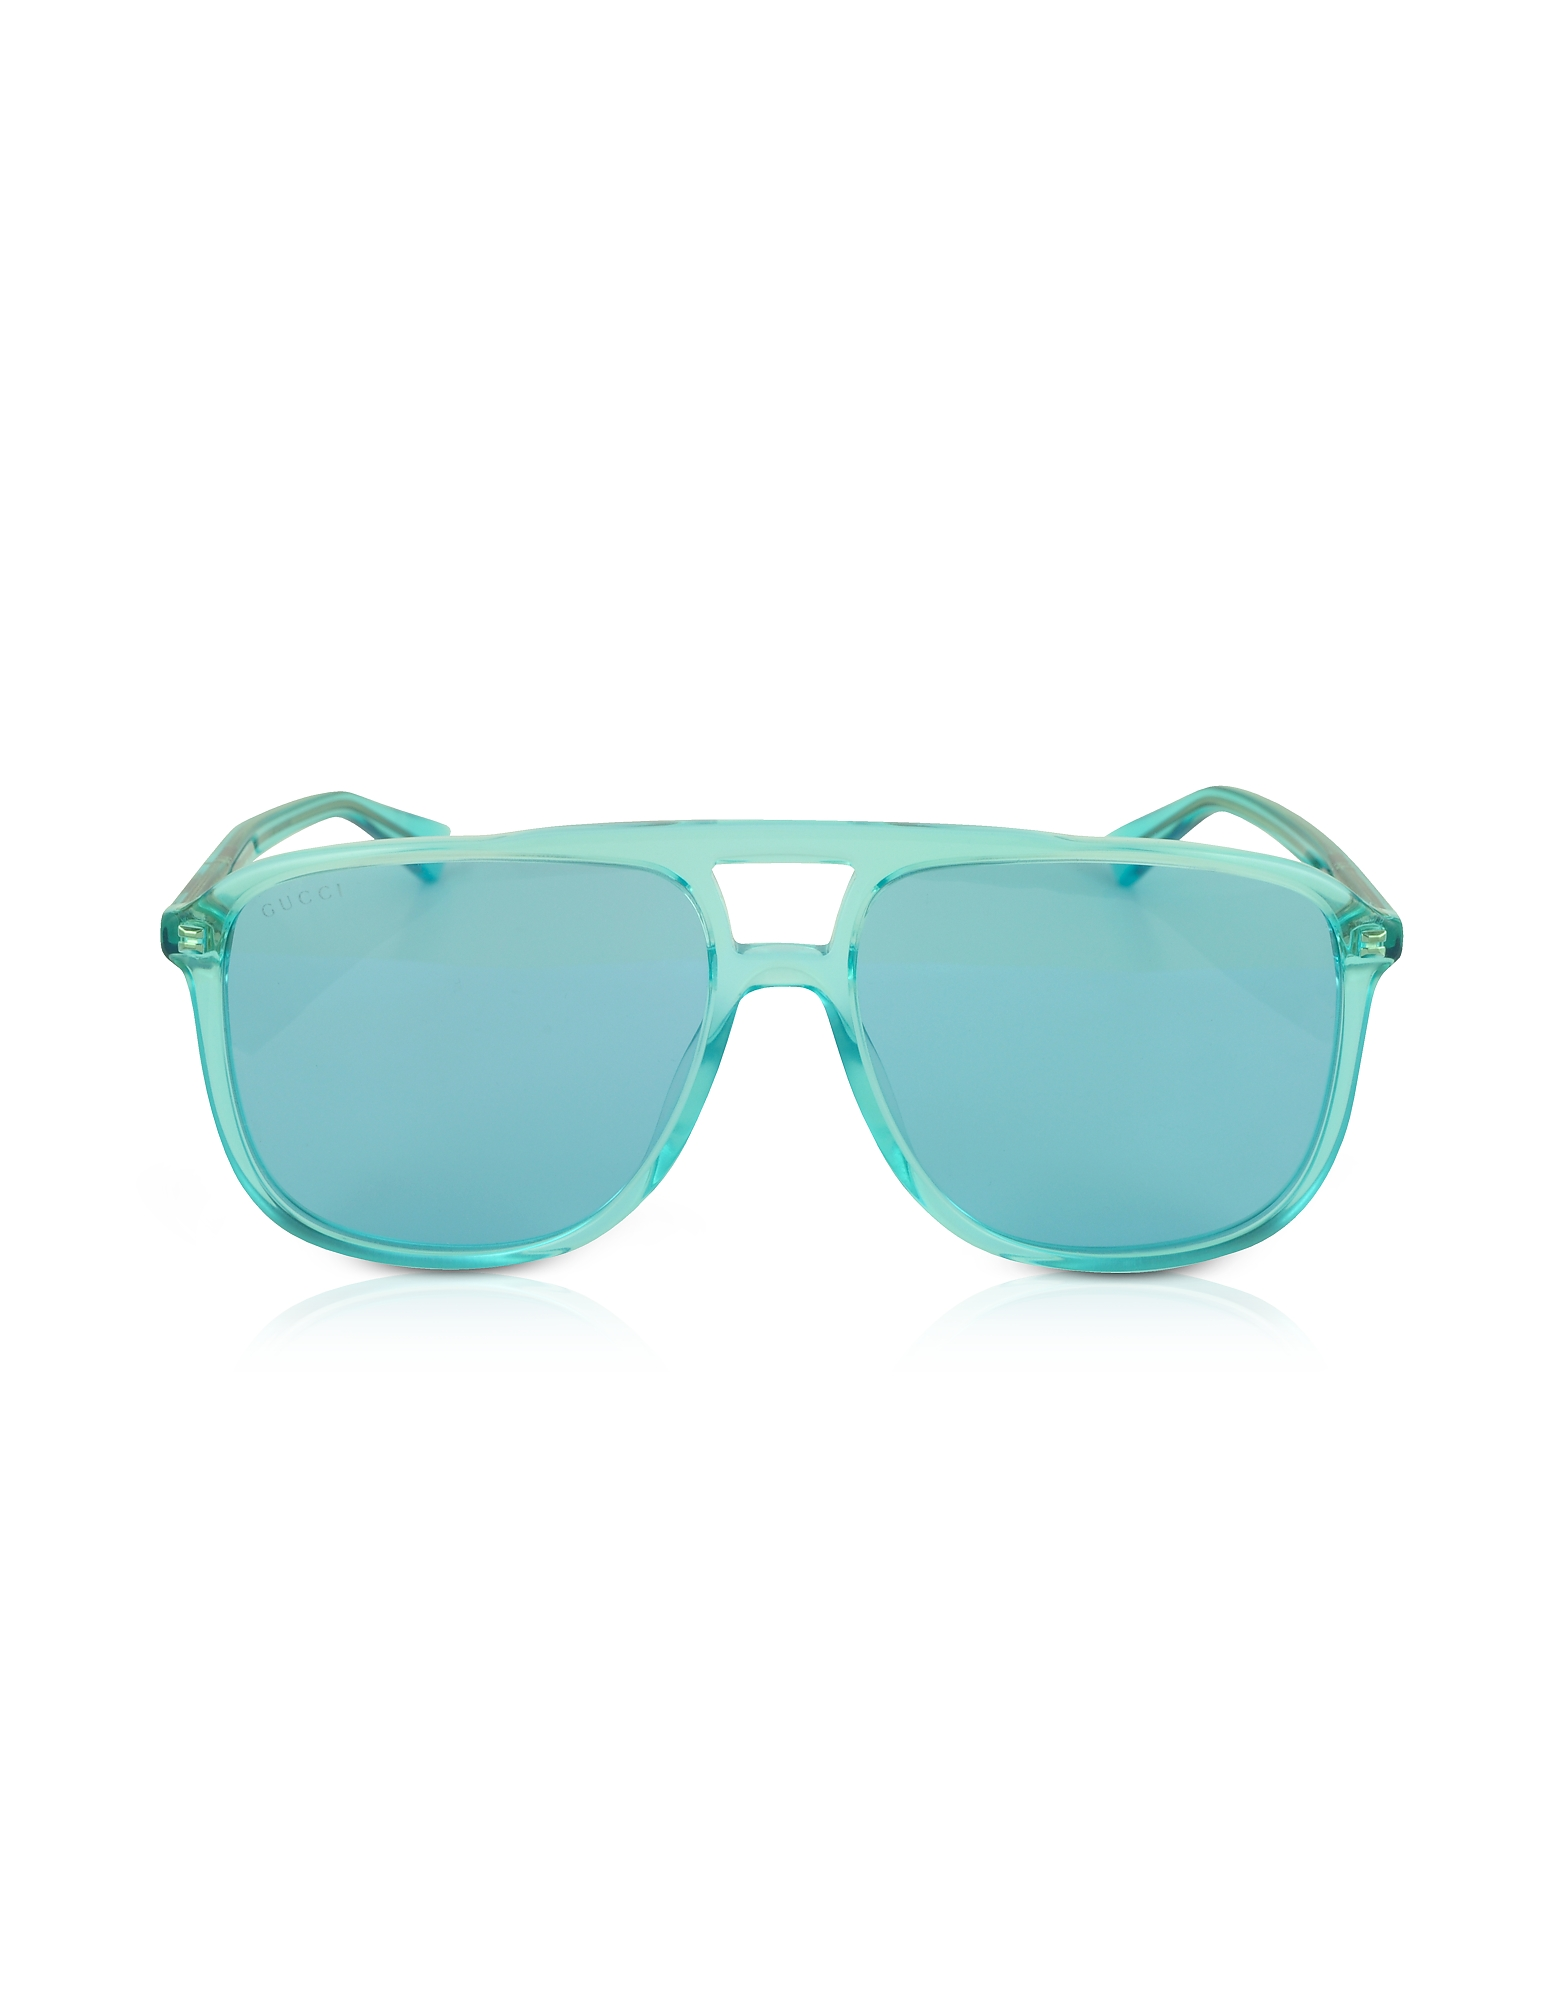 Gucci Sunglasses, GG0262S Rectangular-frame Blue Acetate Sunglasses